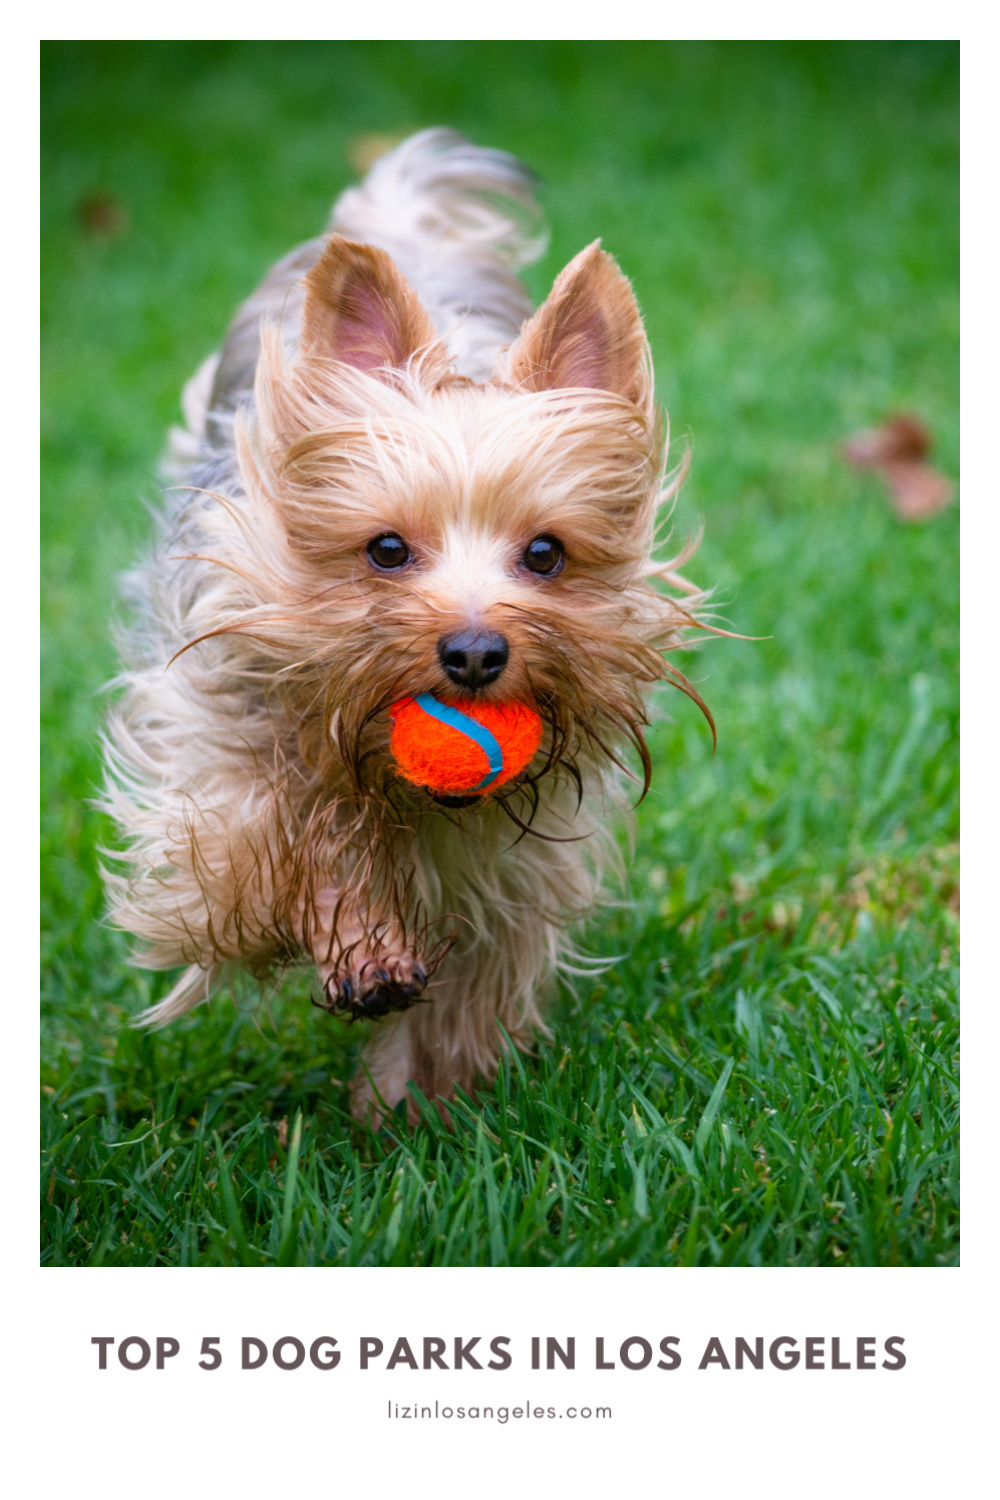 Top 5 Best Dog Parks in Los Angeles, a blog post by Liz in Los Angeles, an image of a dog